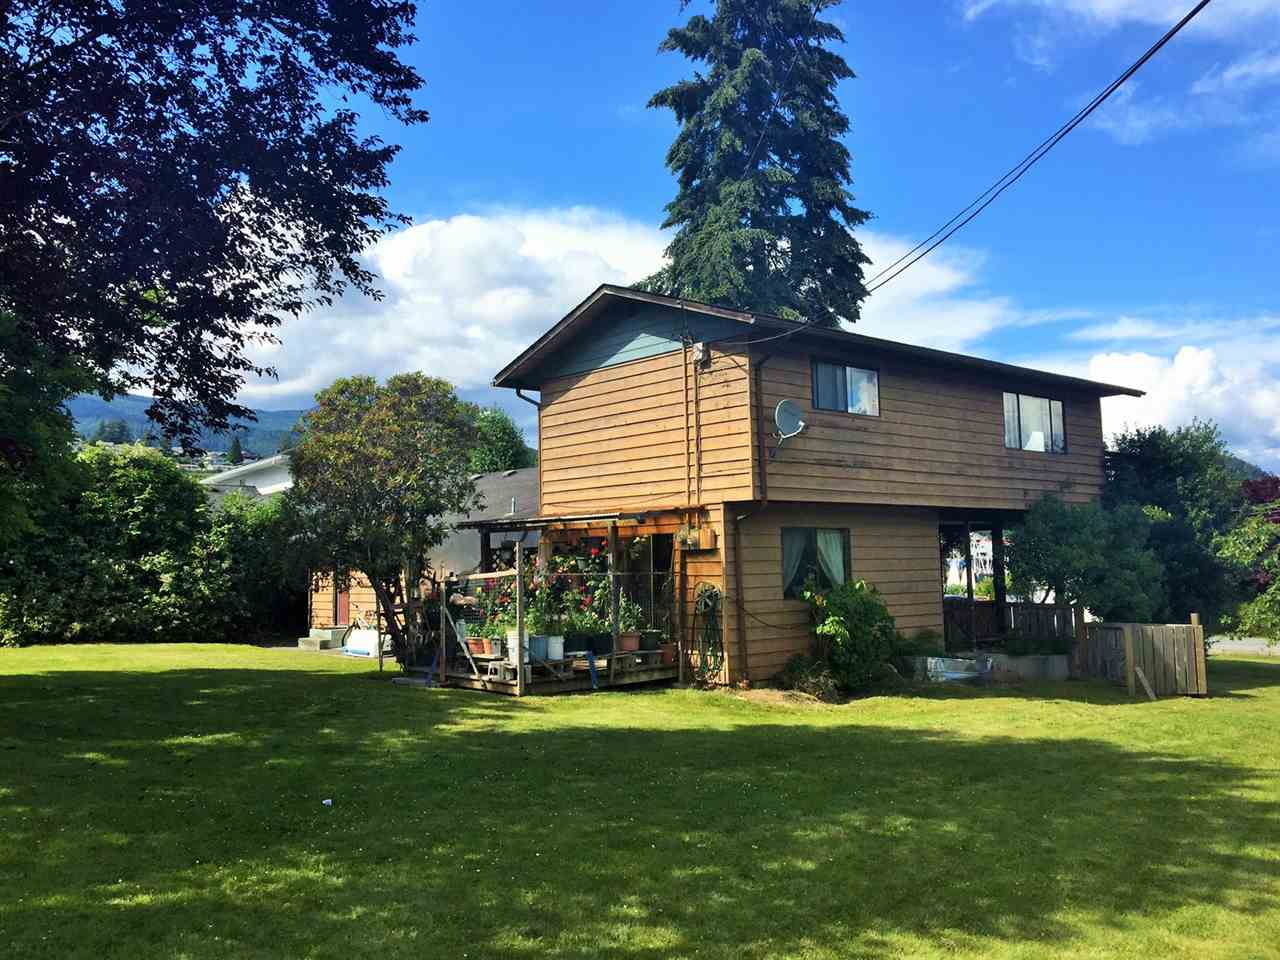 Main Photo: 681 DOUGALL Road in Gibsons: Gibsons & Area House for sale (Sunshine Coast)  : MLS® # R2081212